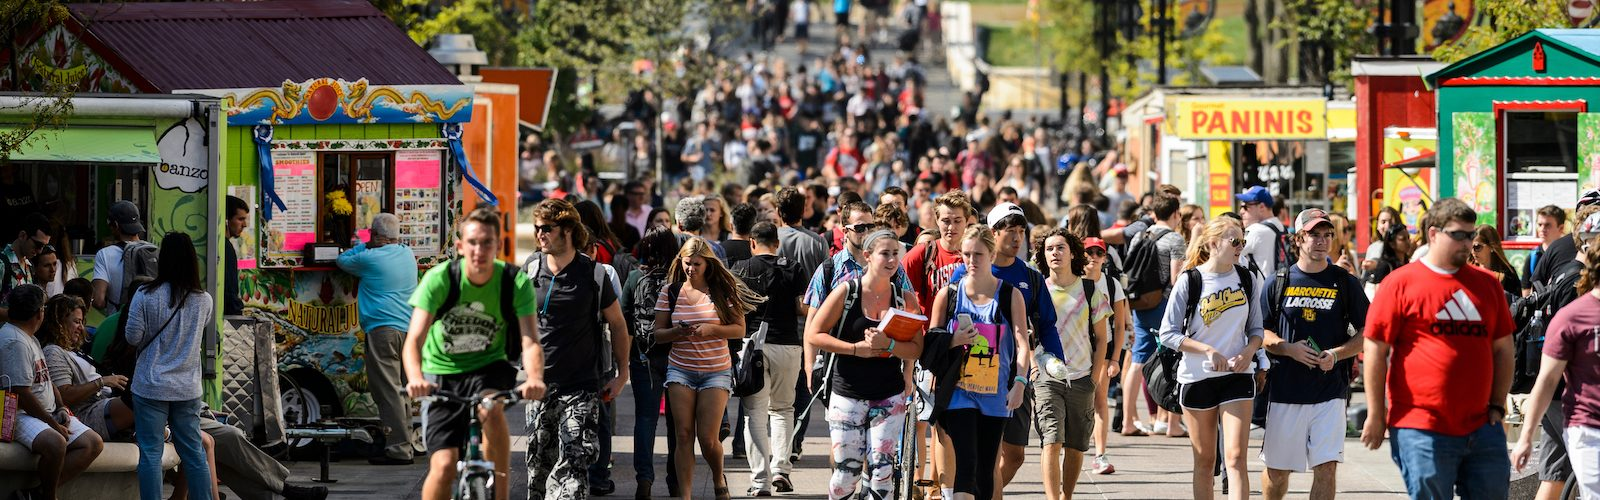 Photo of students with food carts on Library Mall on campus